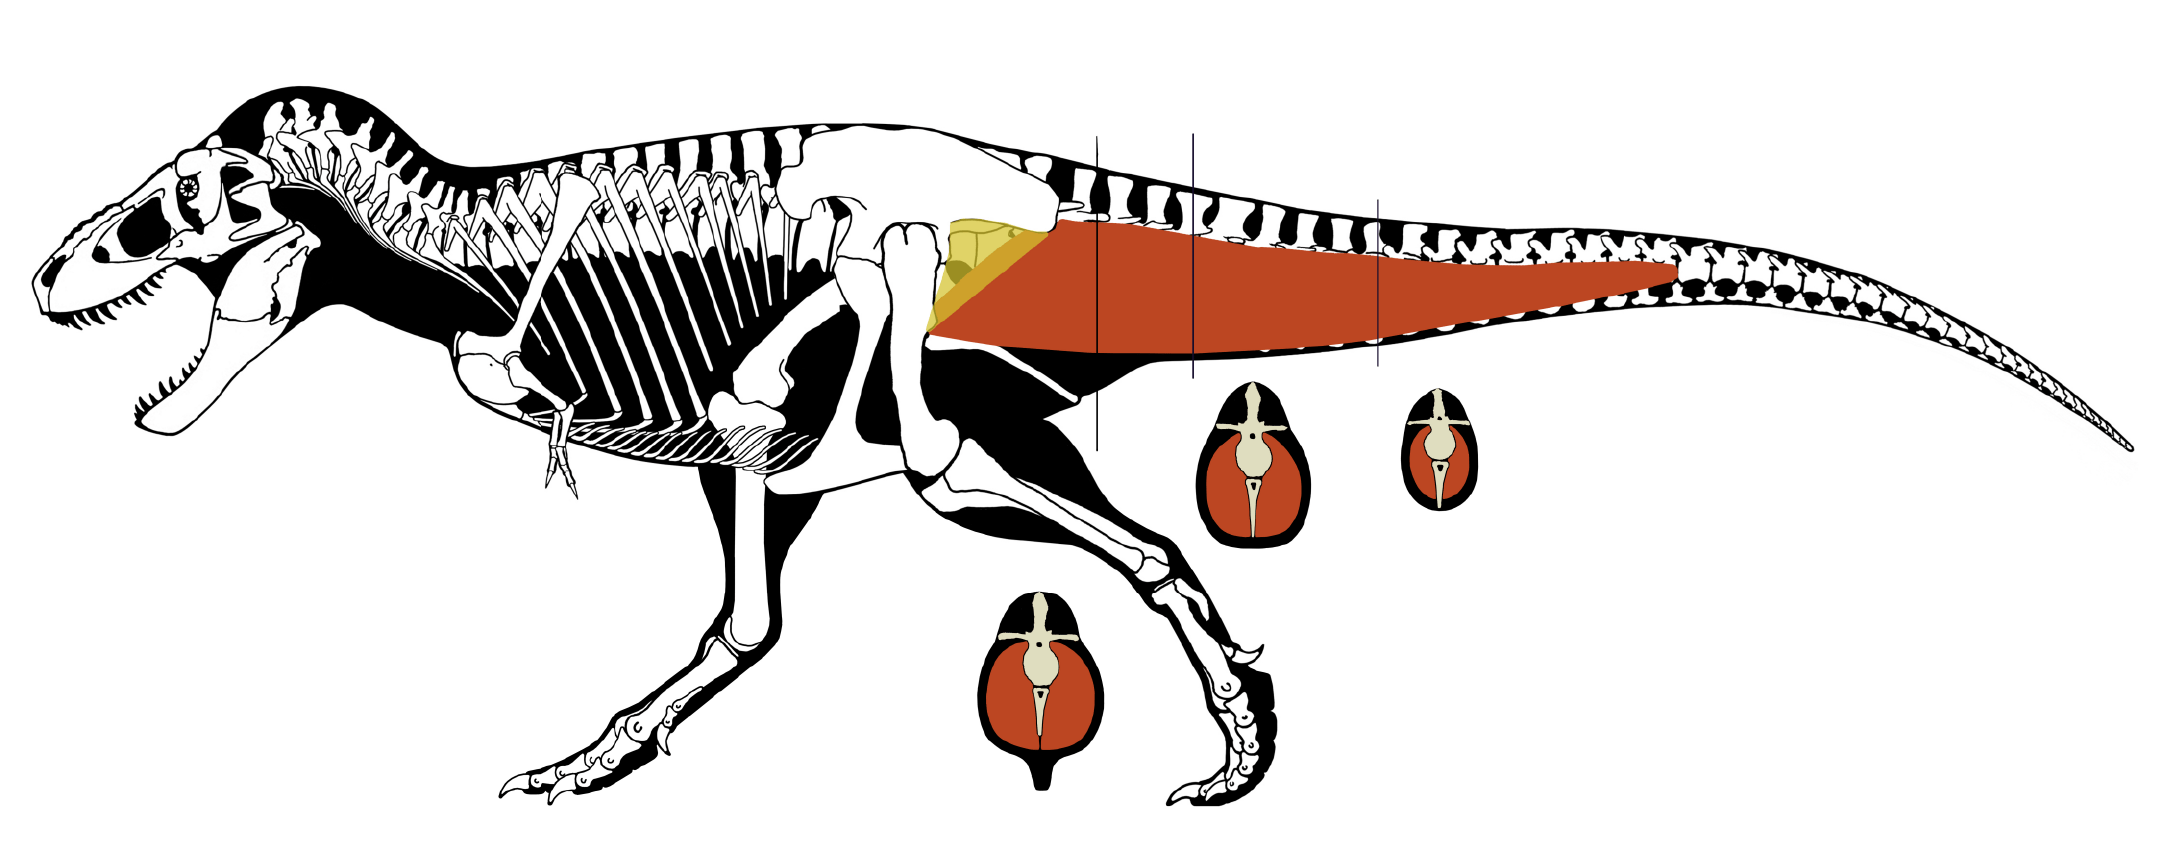 An image of a Tyrannosaurus rex showing large tail muscles connecting to the upper leg and hip.